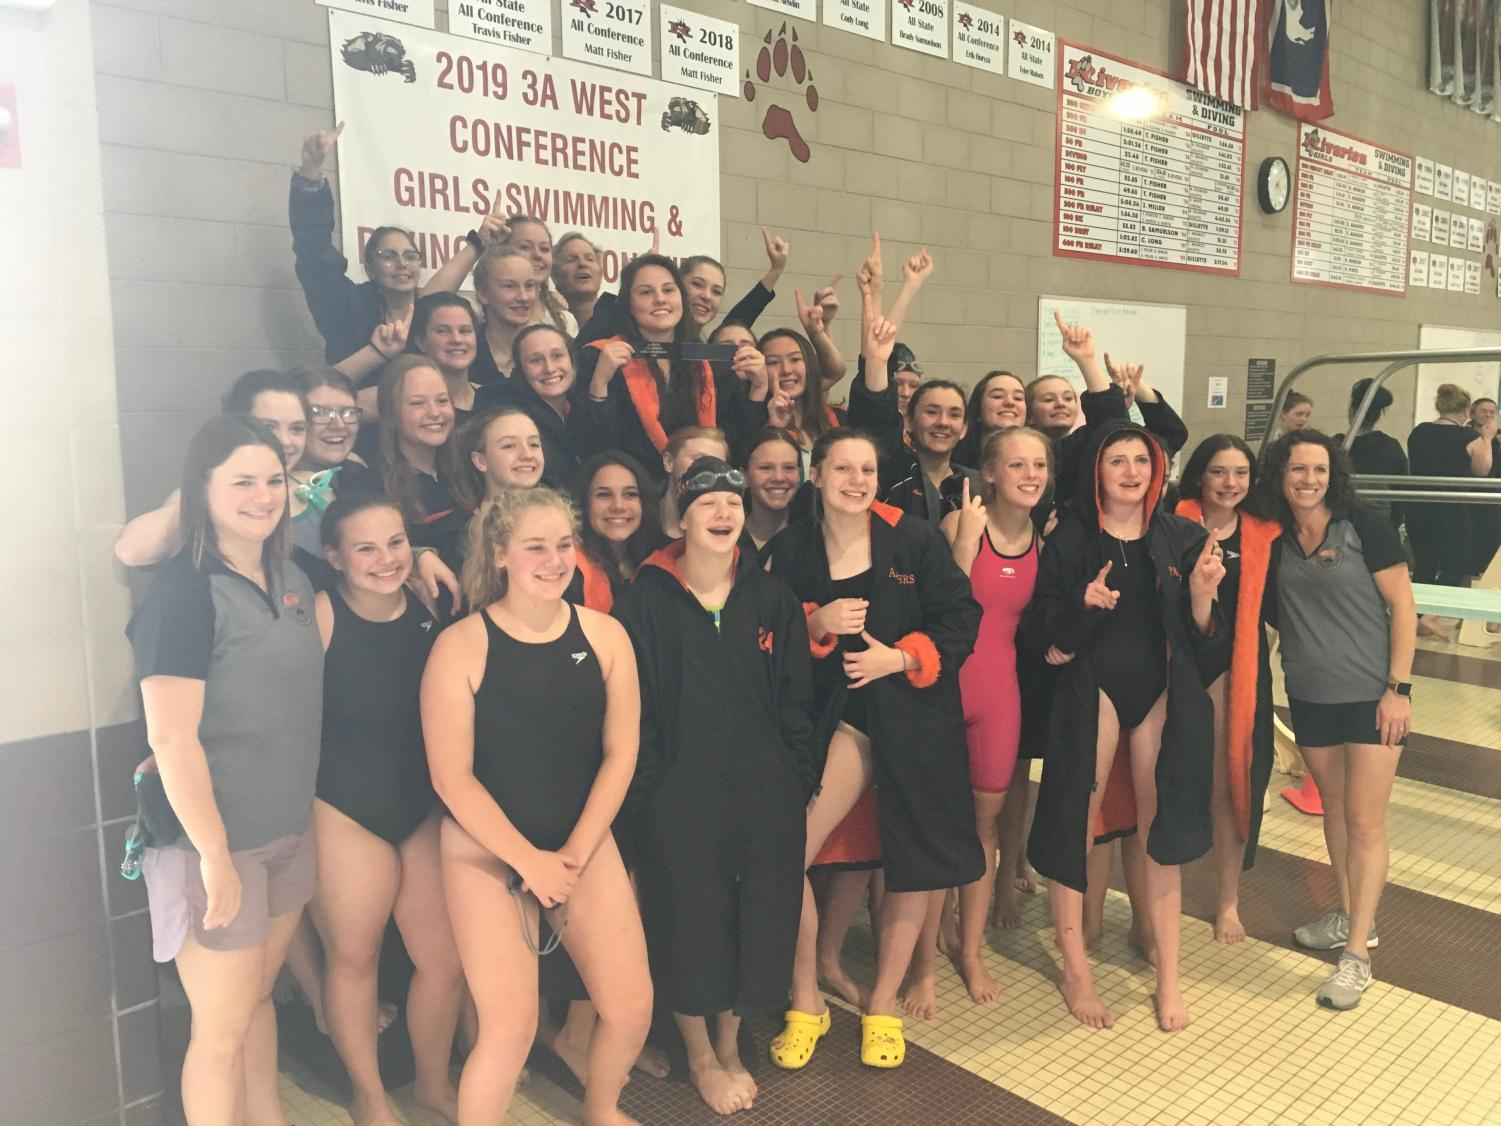 The Powell High School Lady Panther swim team stands and poses for a picture after their win.